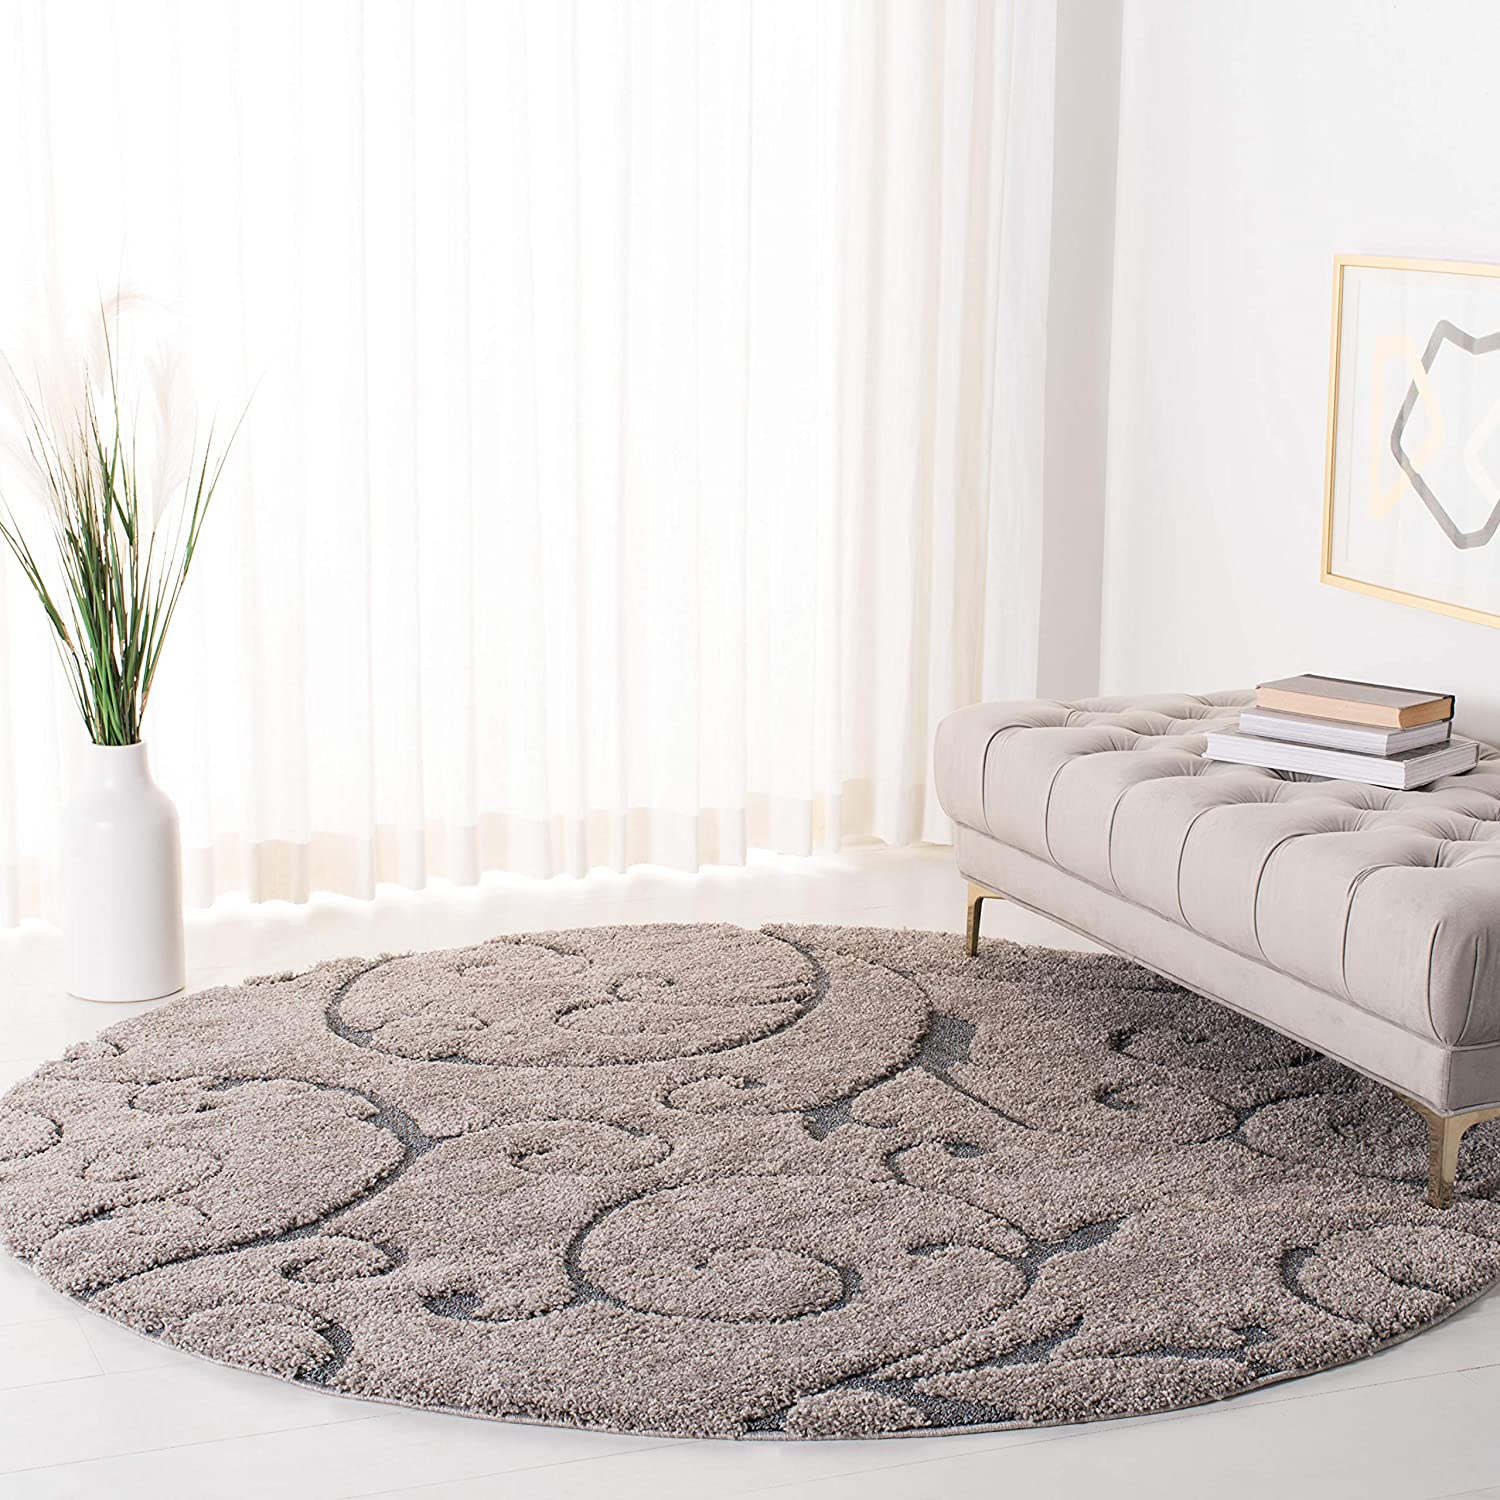 SAFAVIEH Florida Shag Collection SG455 Scrolling Vine Graceful Swirl Textured Non-Shedding Living Room Bedroom Dining Room Entryway Plush 1.2-inch Thick Area Rug, 5' x 5' Round, Grey / Light Blue